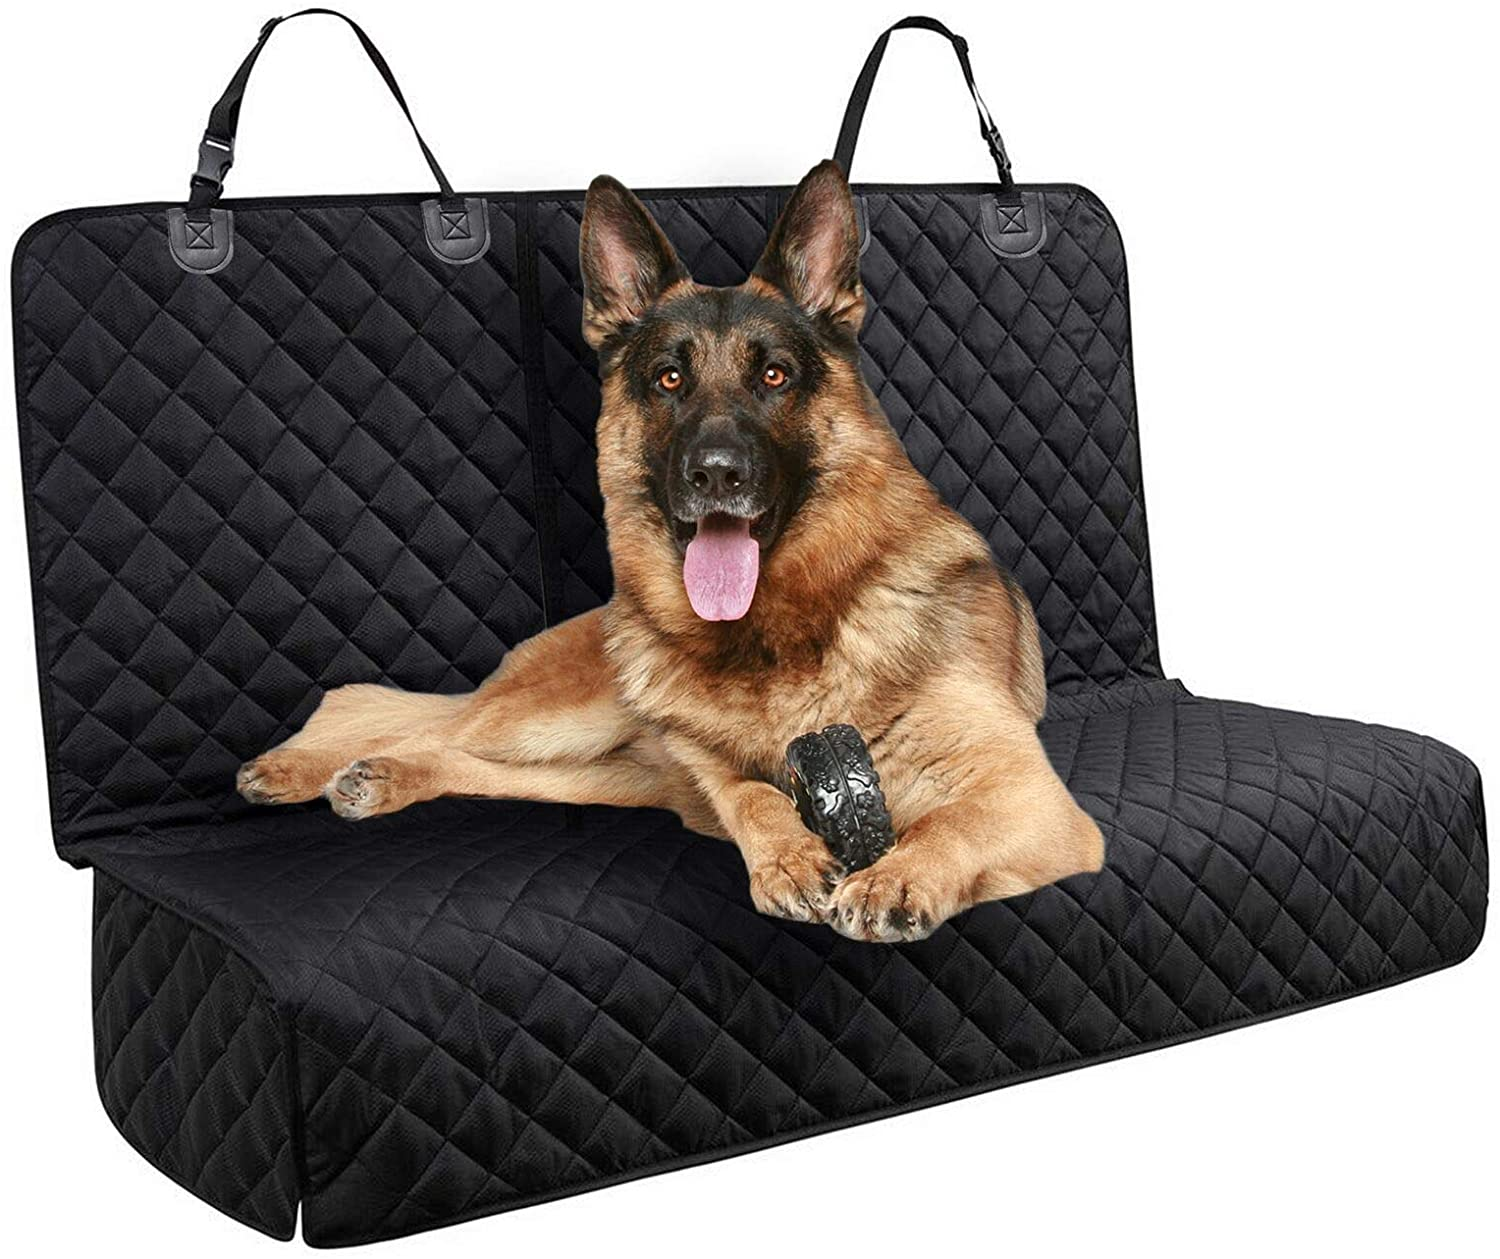 DakPets Dog Car Seat Covers Super sale period limited Protector Cover †Gifts Pet -